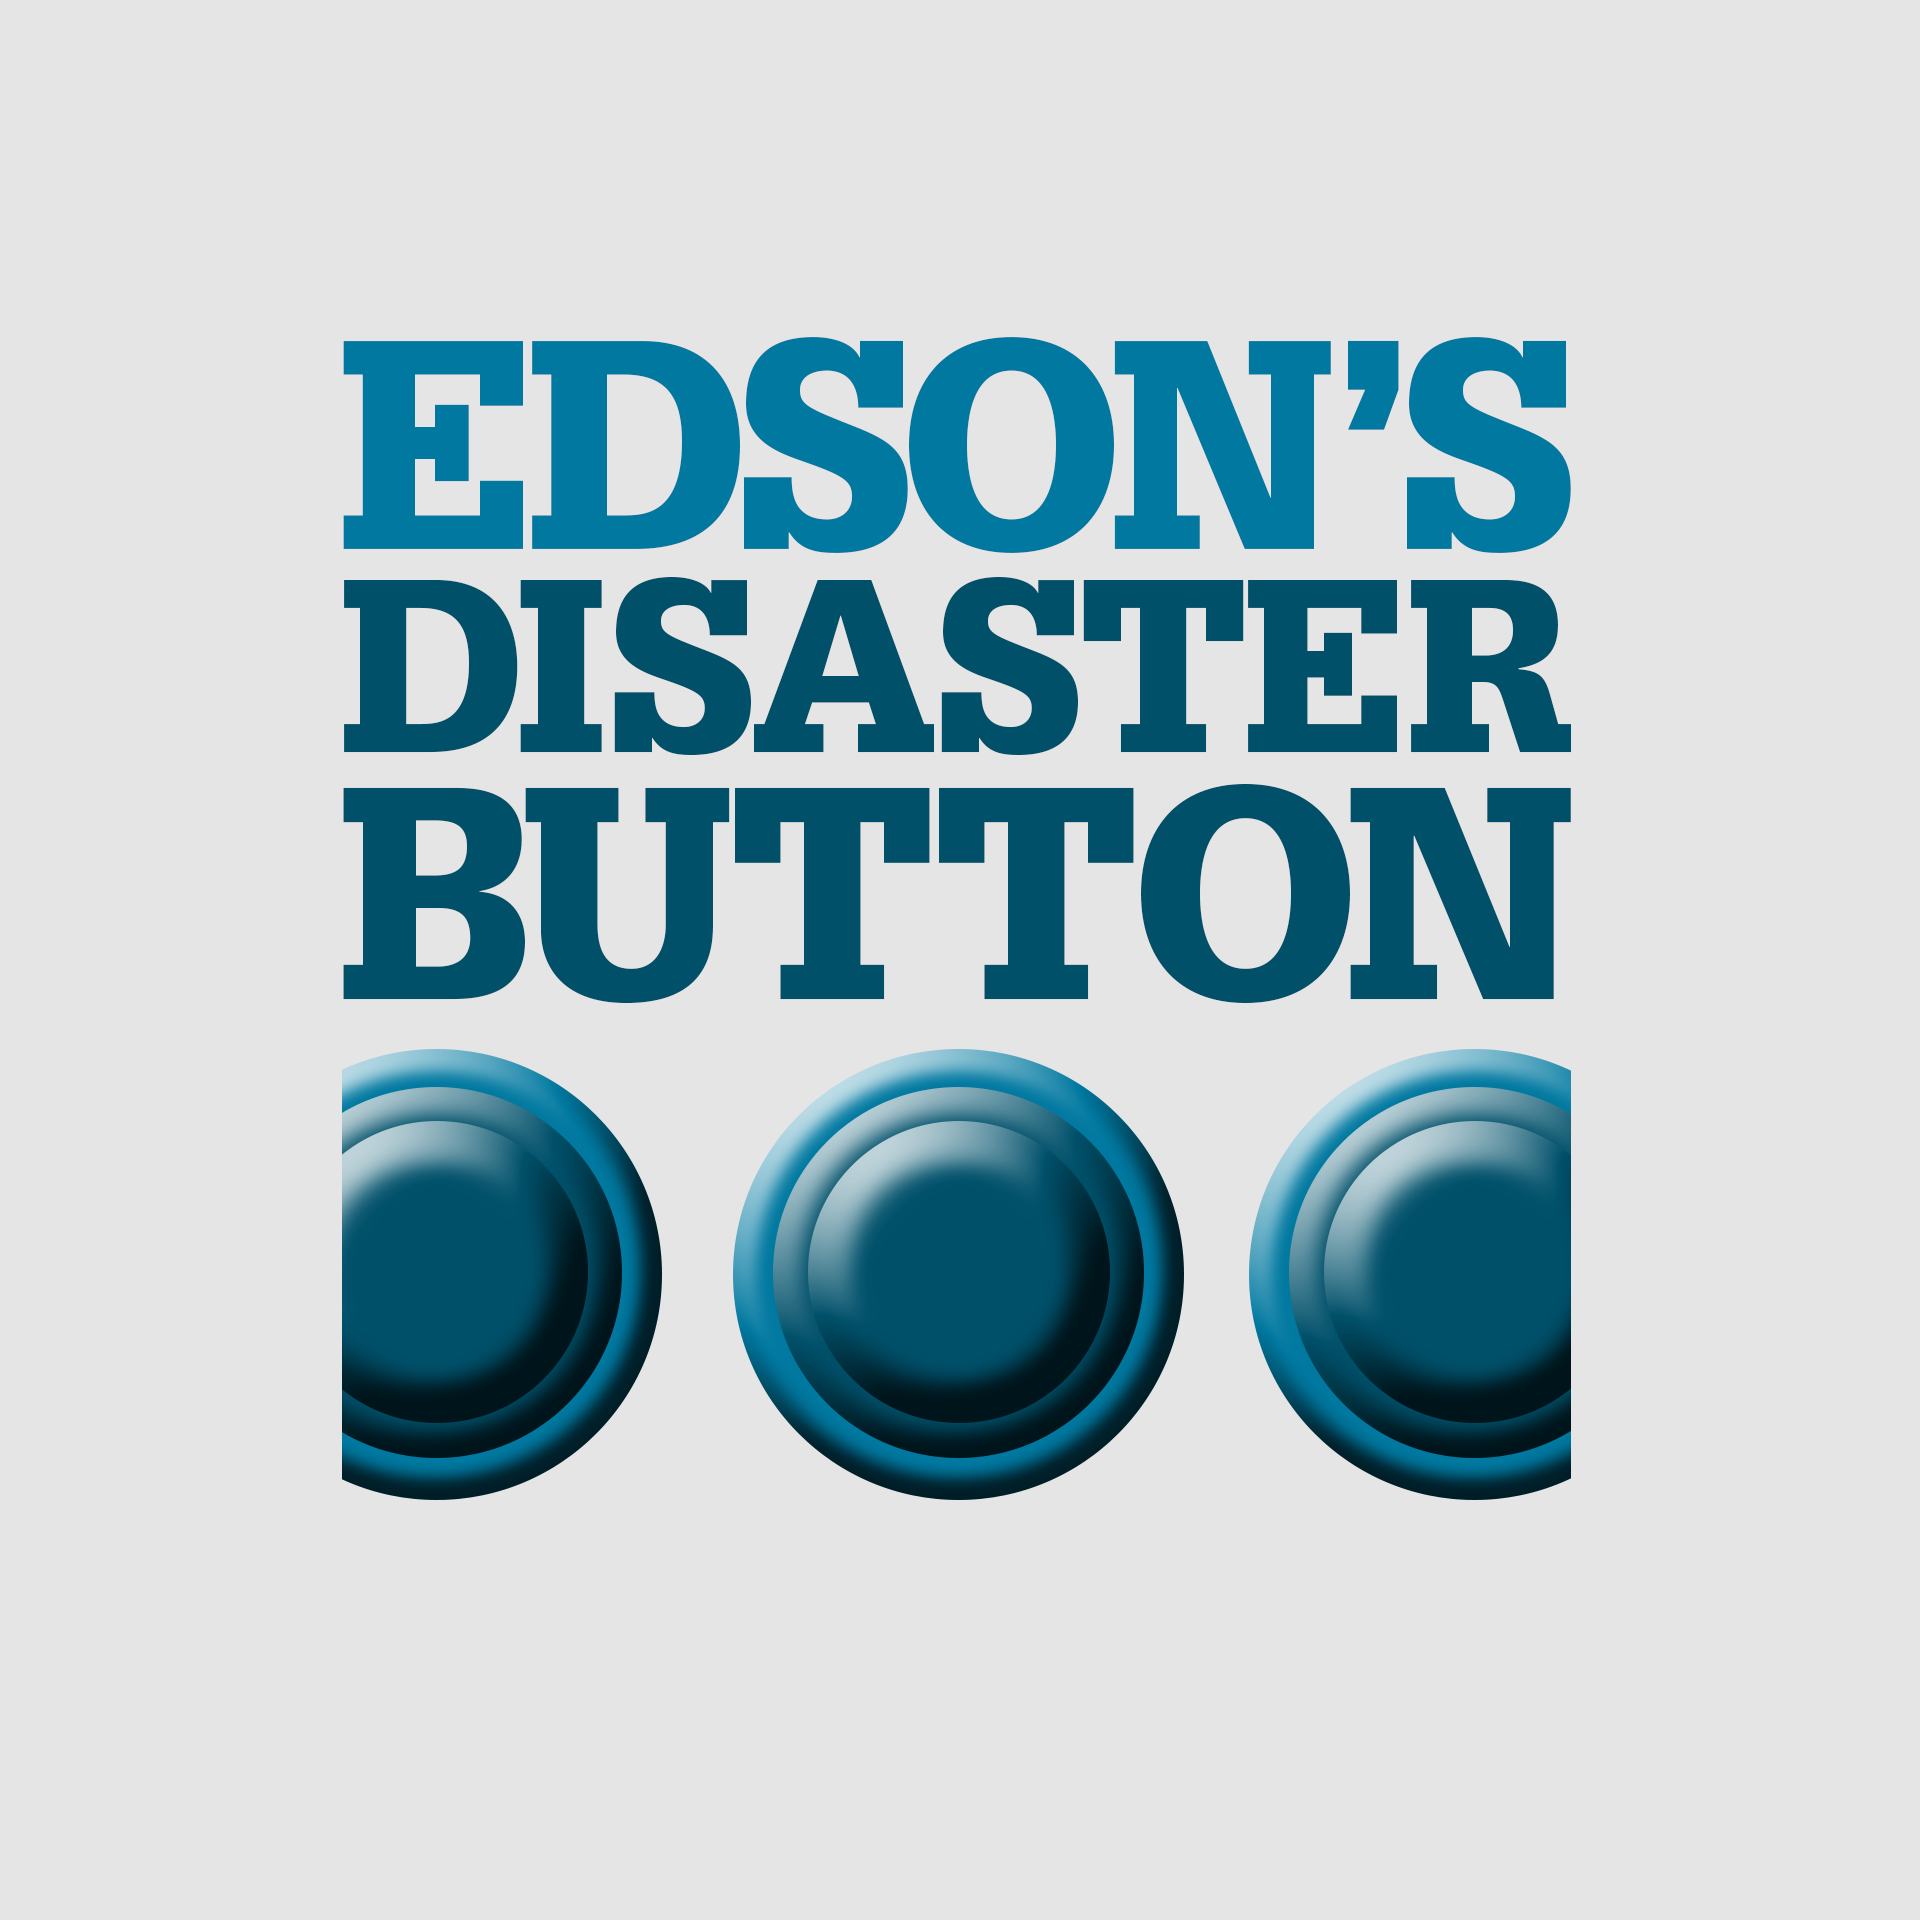 Edson's Disaster Button